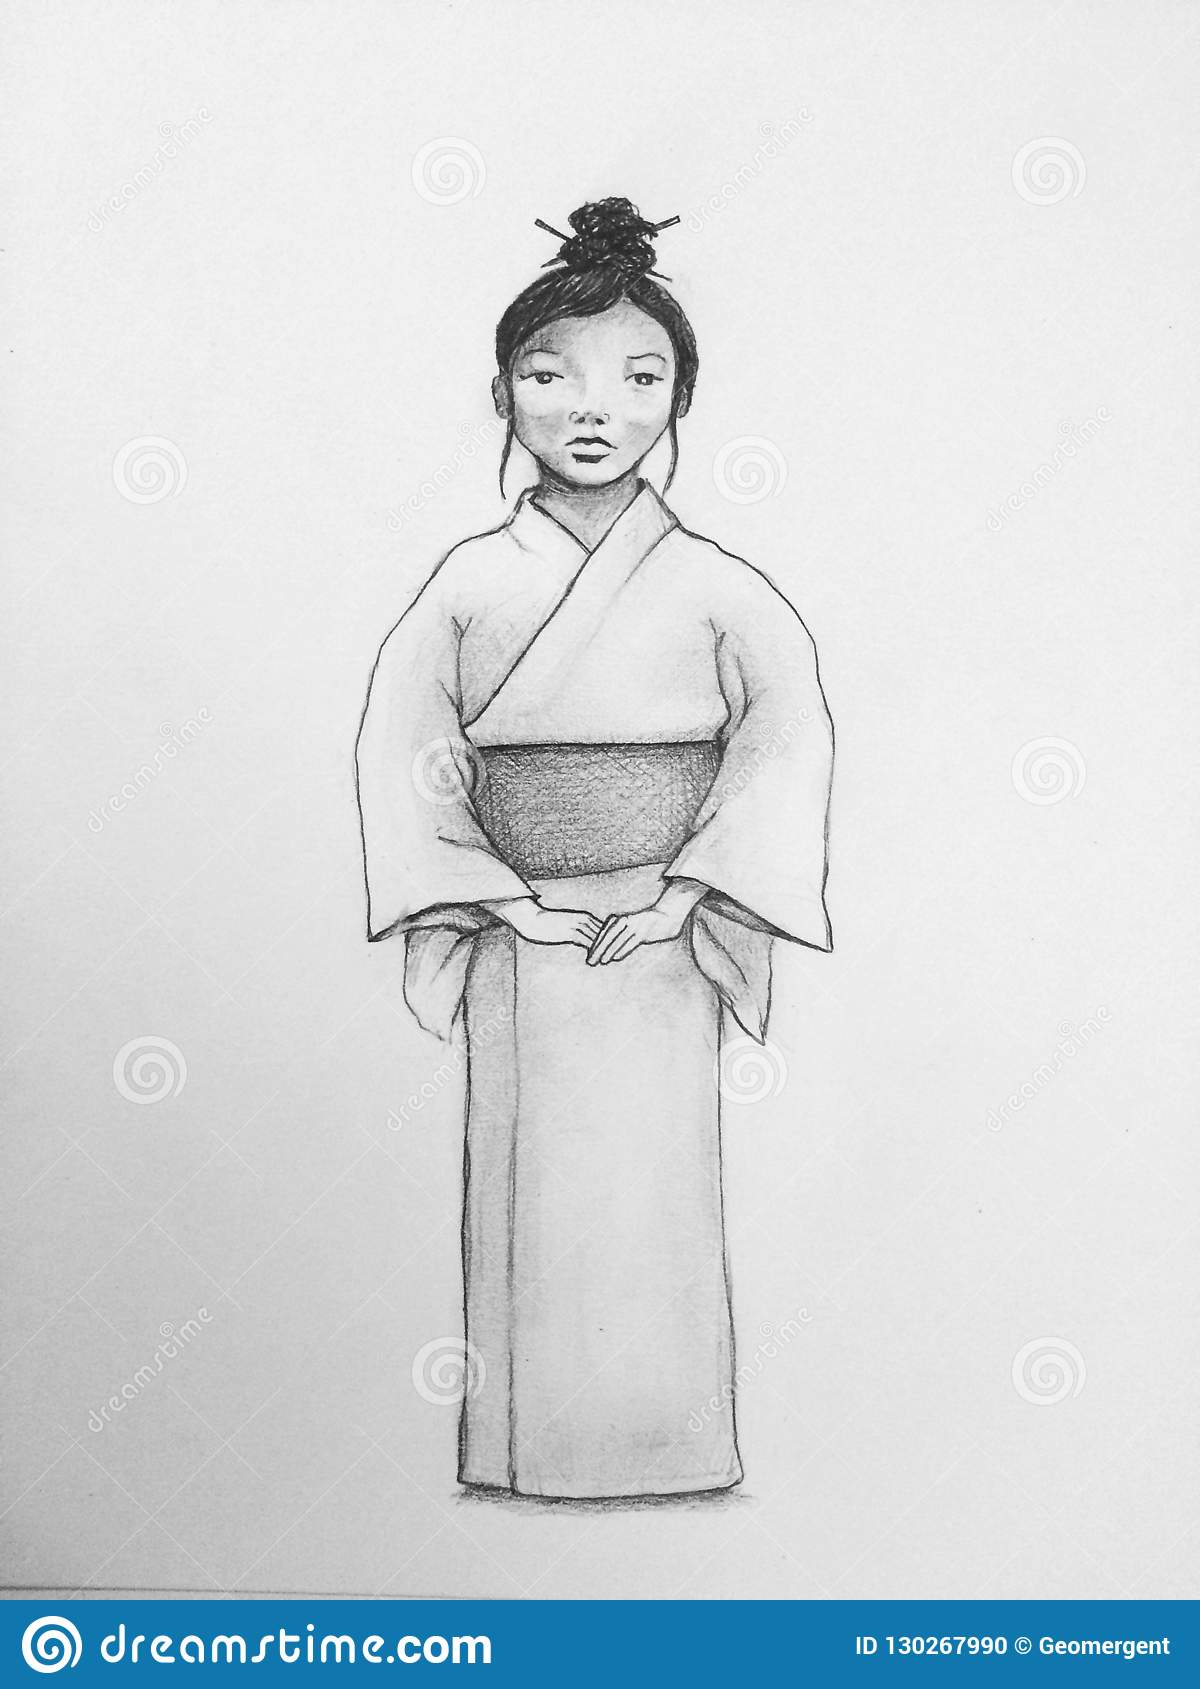 An original pencil drawing of a pretty japanese girl dressed in the traditional dress with waist sash and with her hair put up with hair sticks in a bun